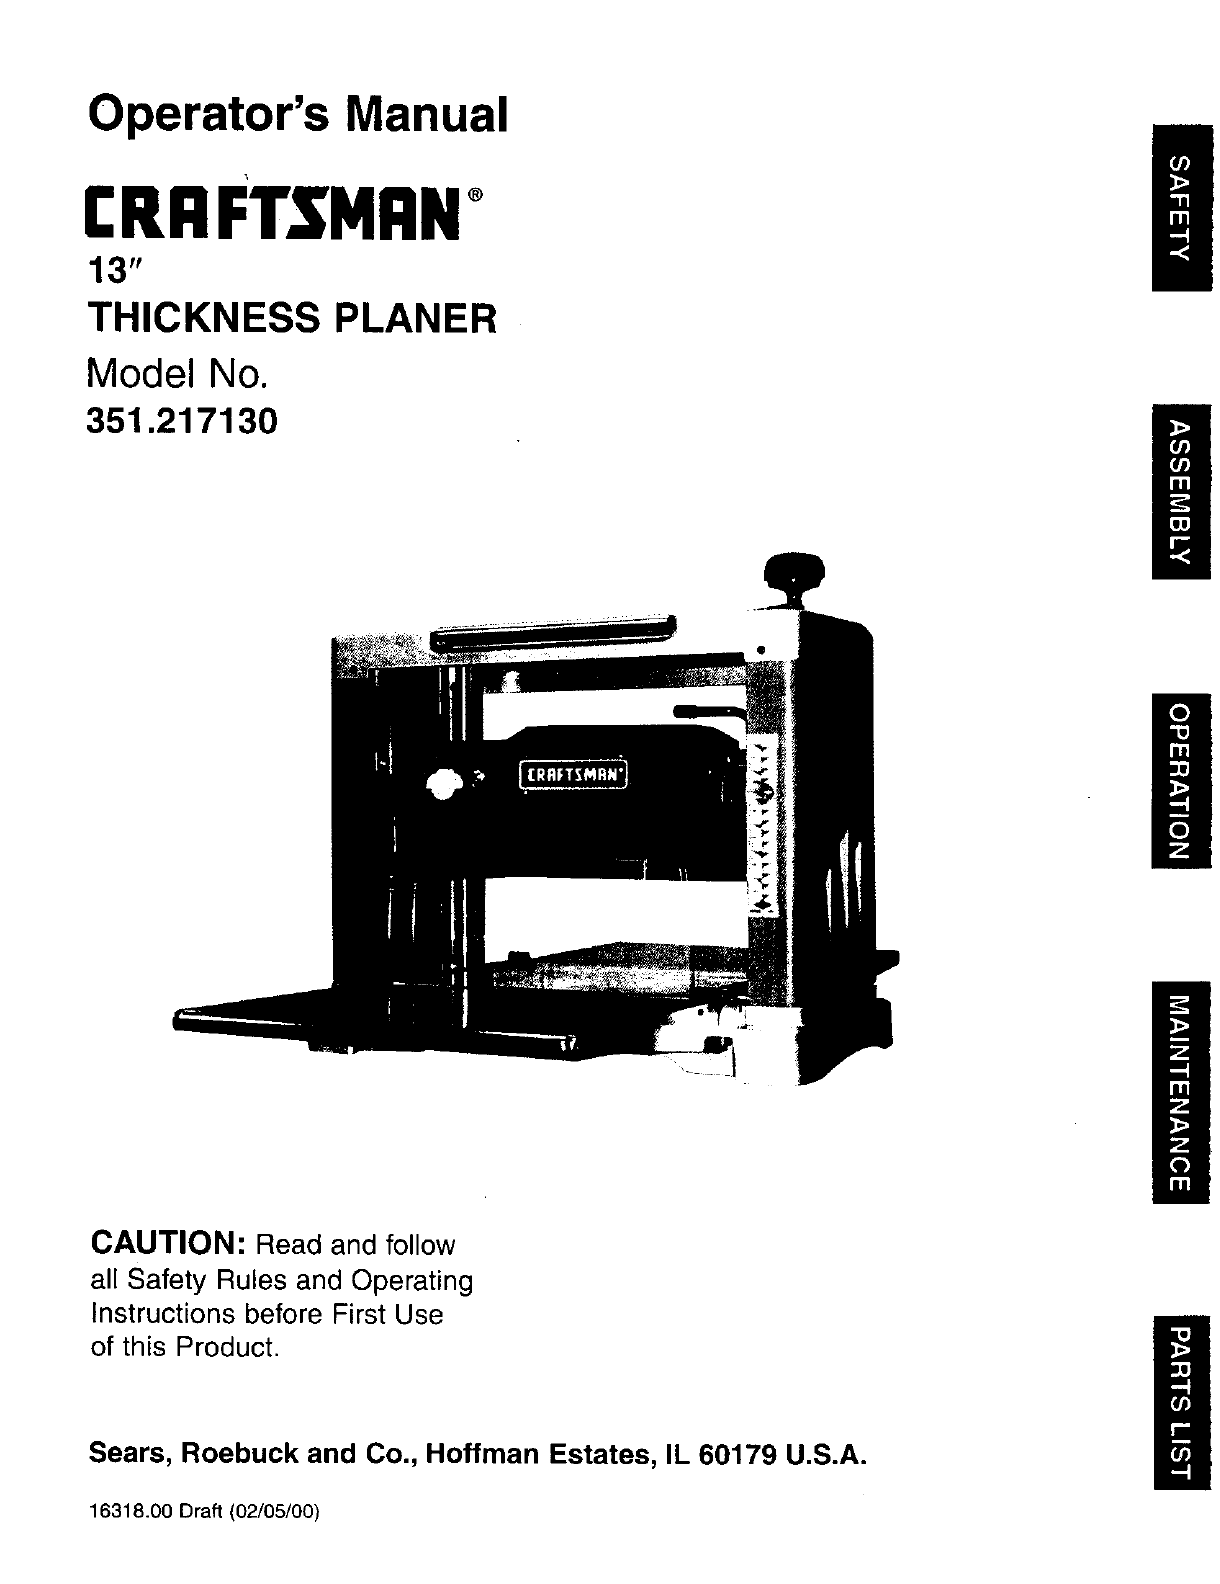 Craftsman Thickness Planer Manual